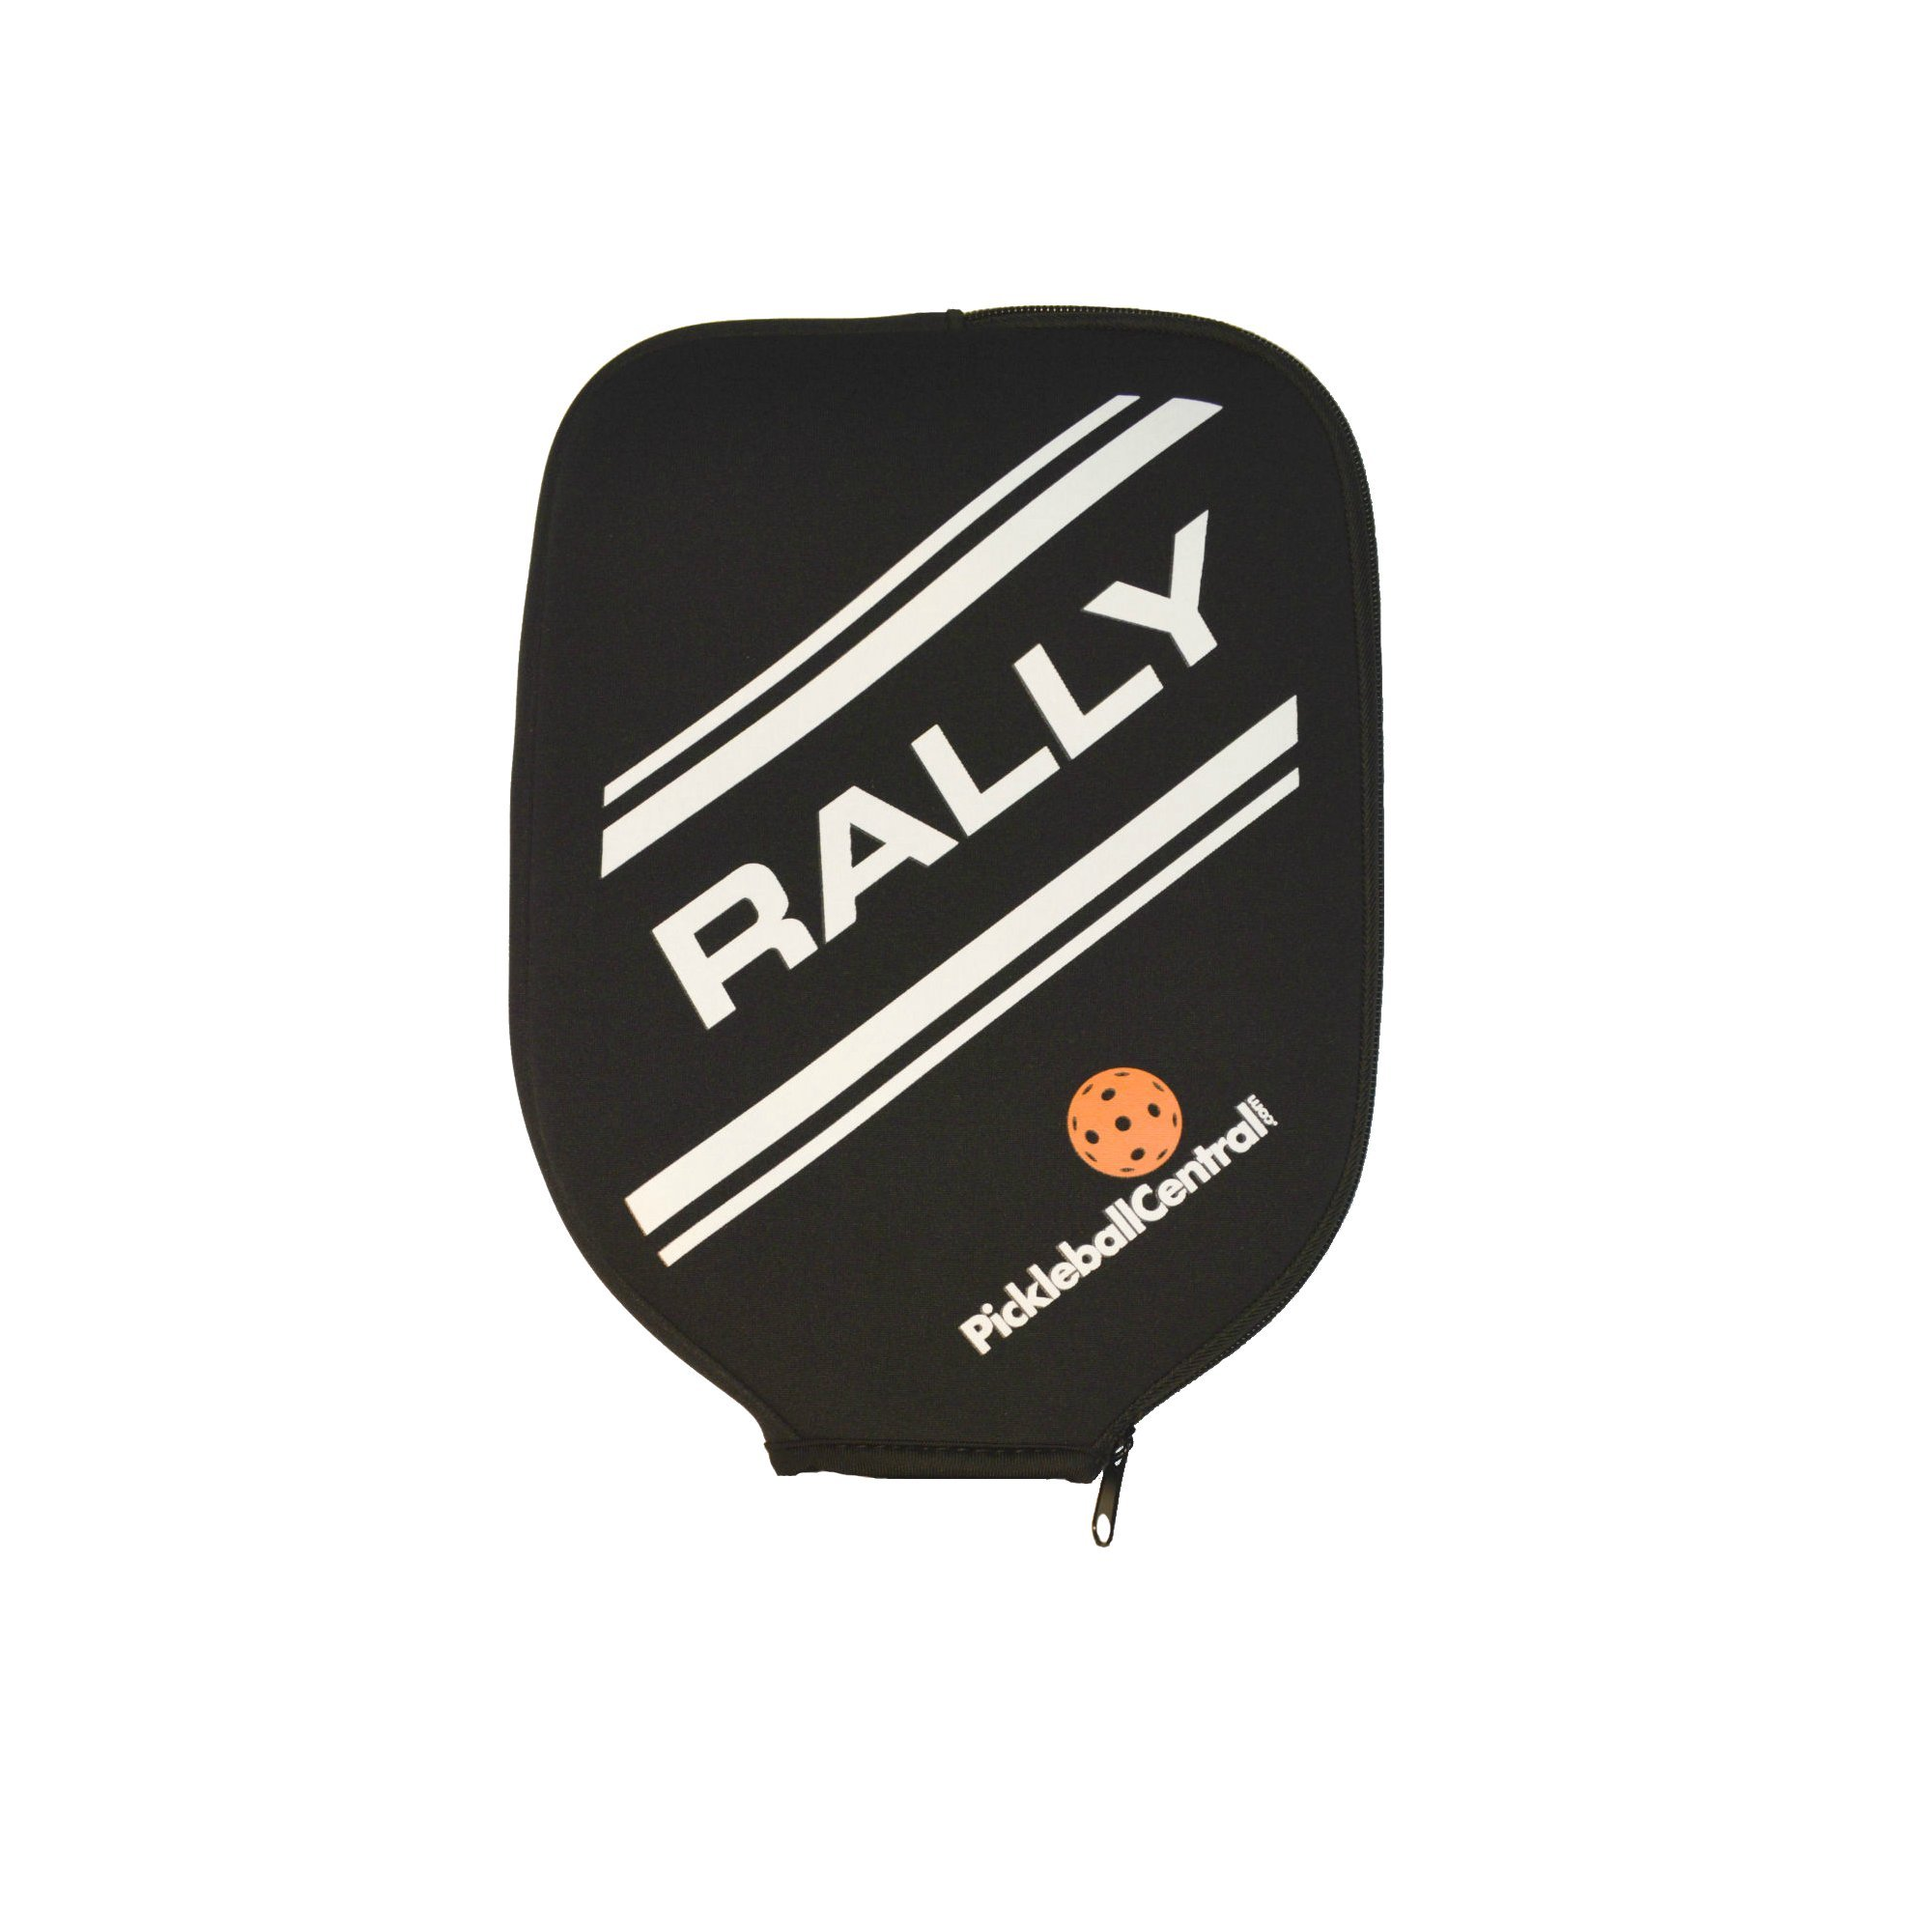 Rally Tyro 2 Pro Pickleball Paddle (1 Paddle/Cover - Ocean Blue) by PickleballCentral (Image #4)